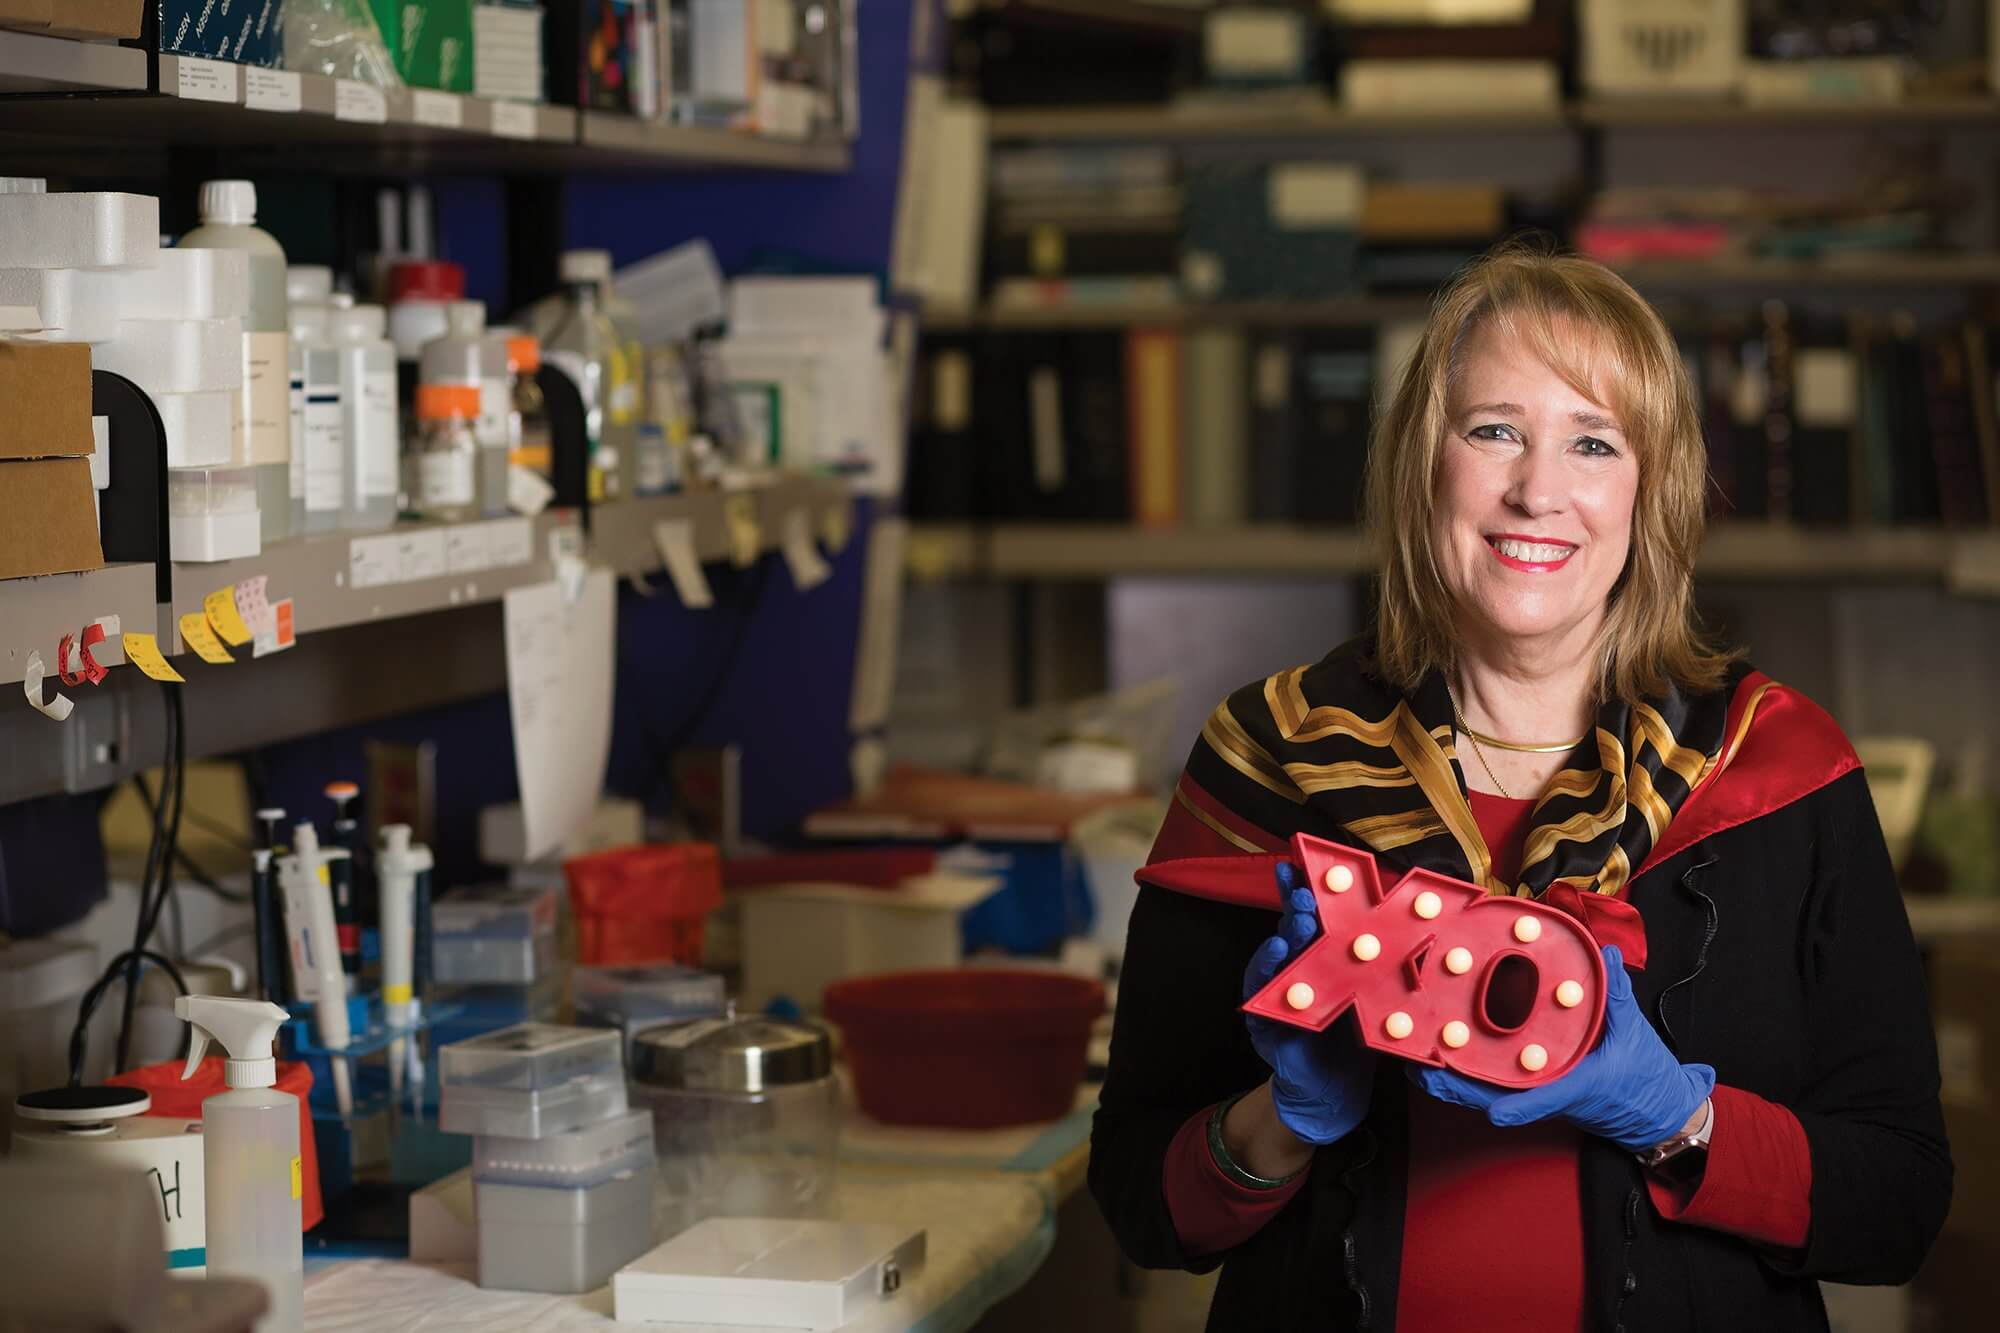 Dolores J. Lamb, Ph.D., poses in her laboratory at Baylor College of Medicine.